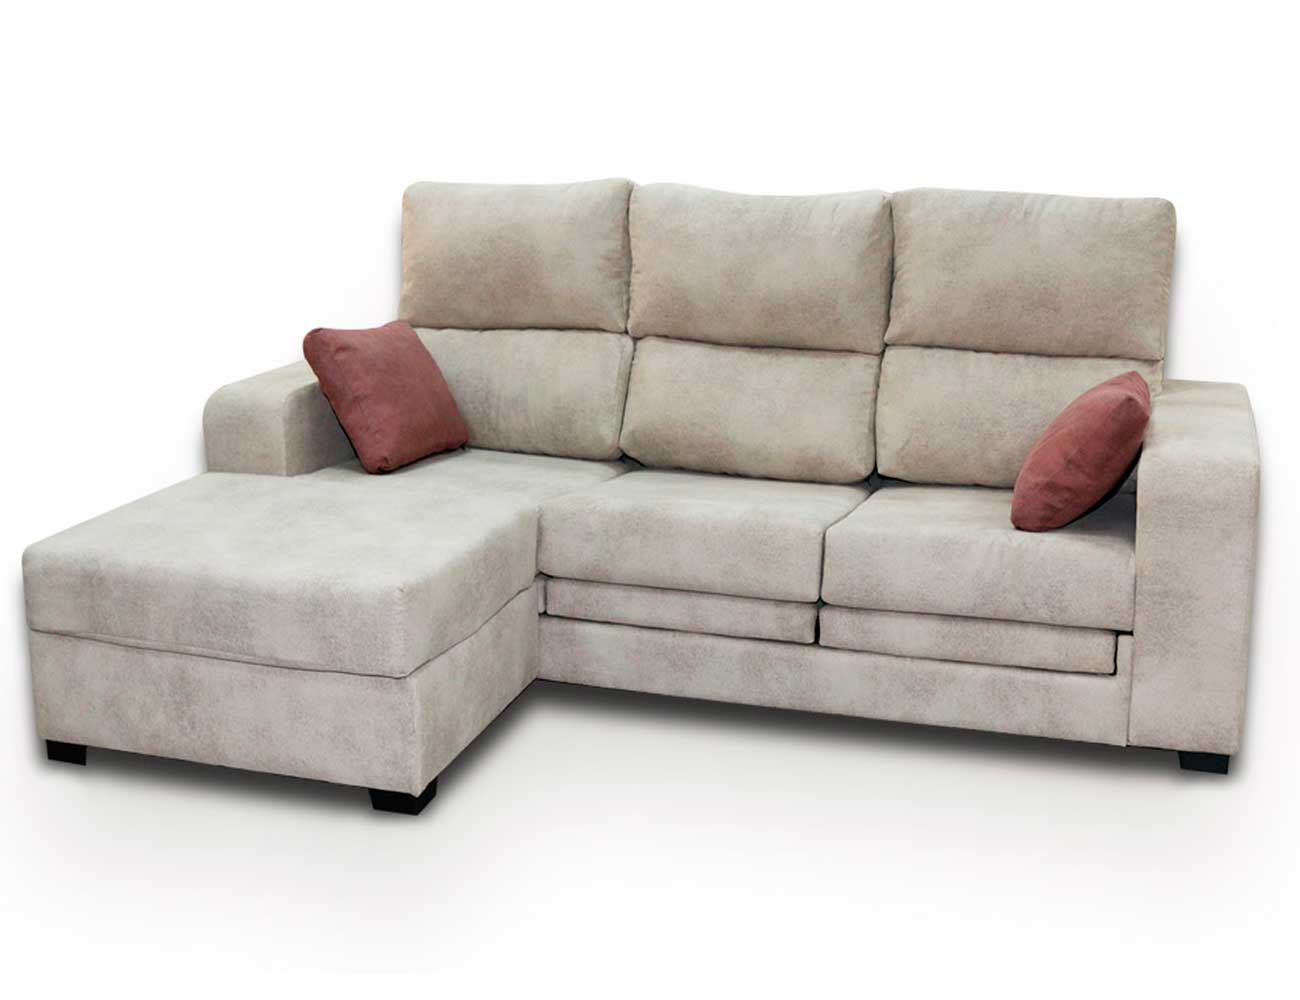 Sofa 3p puff reversible6